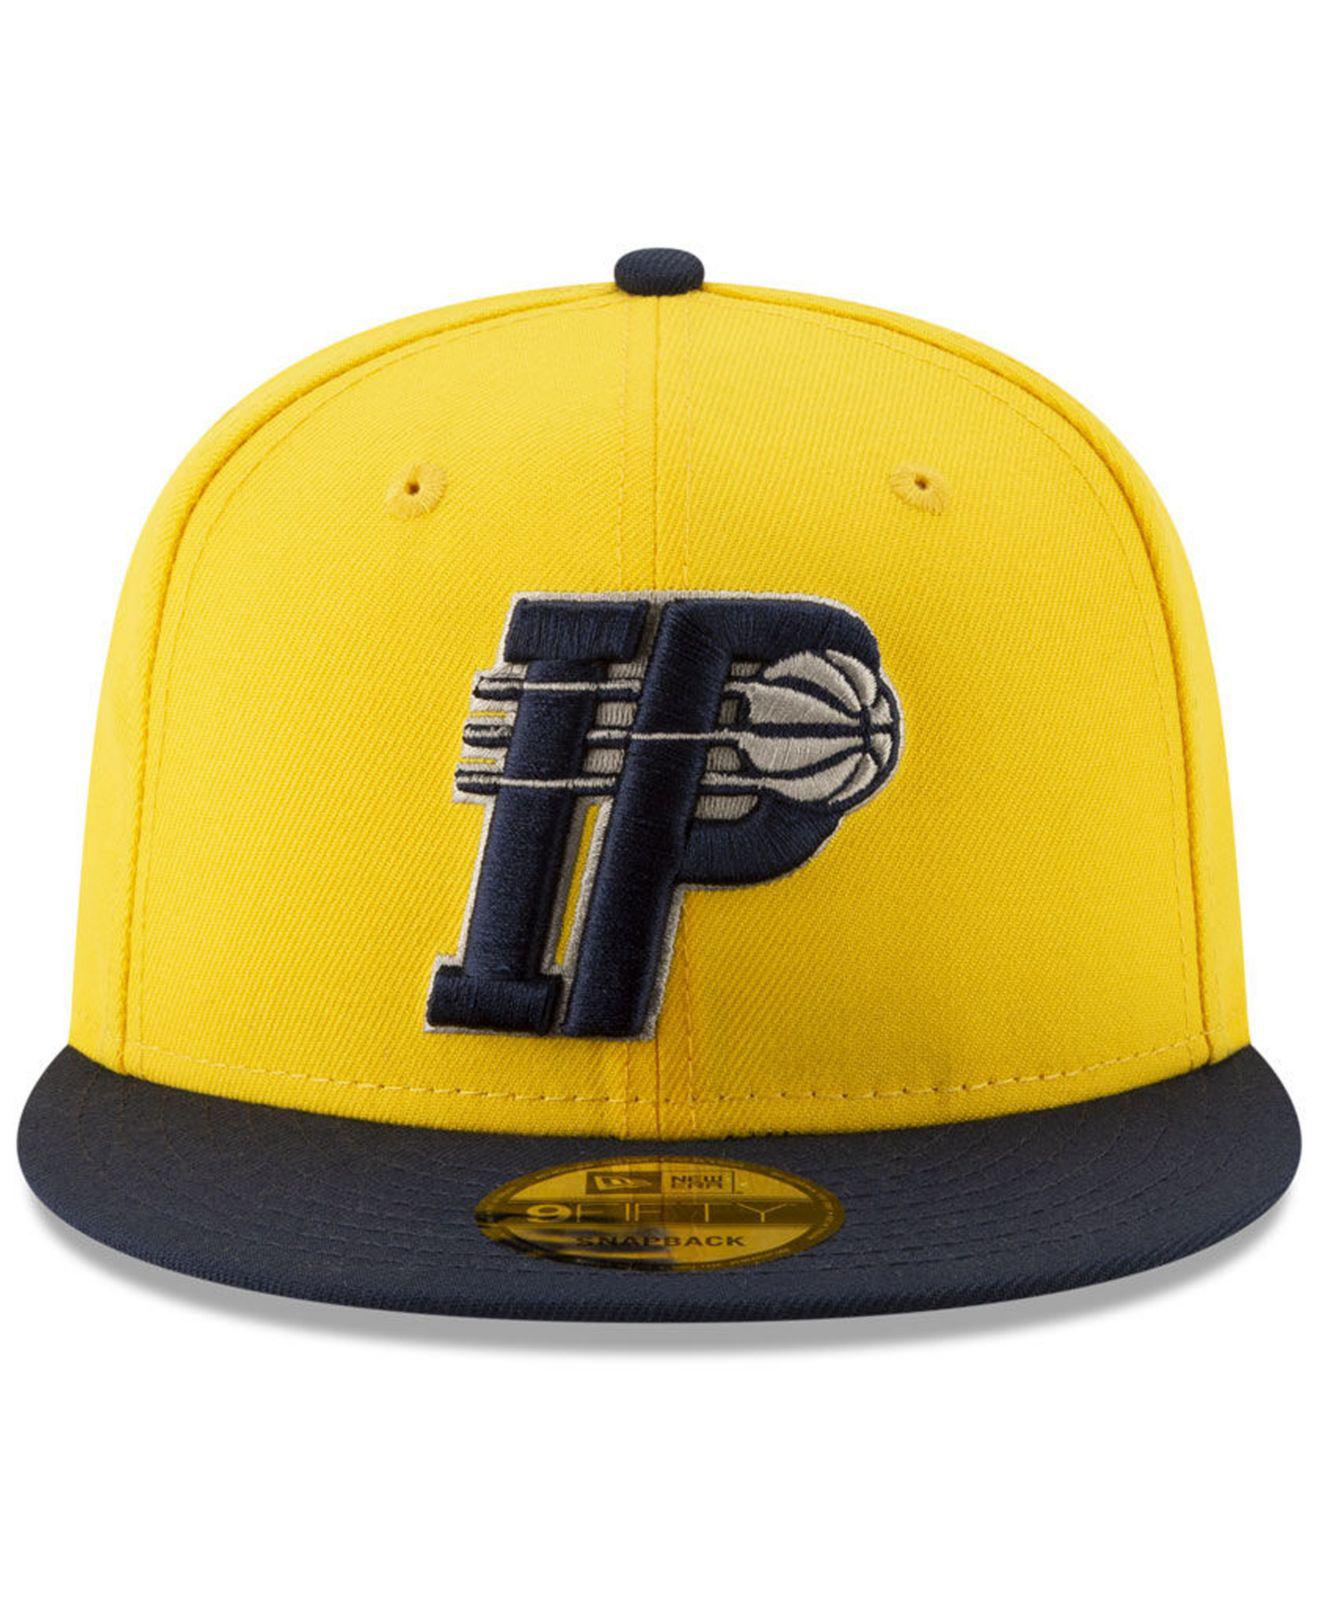 new products 1cec4 e166b Lyst - KTZ Indiana Pacers Light City Combo 9fifty Snapback Cap in Yellow  for Men